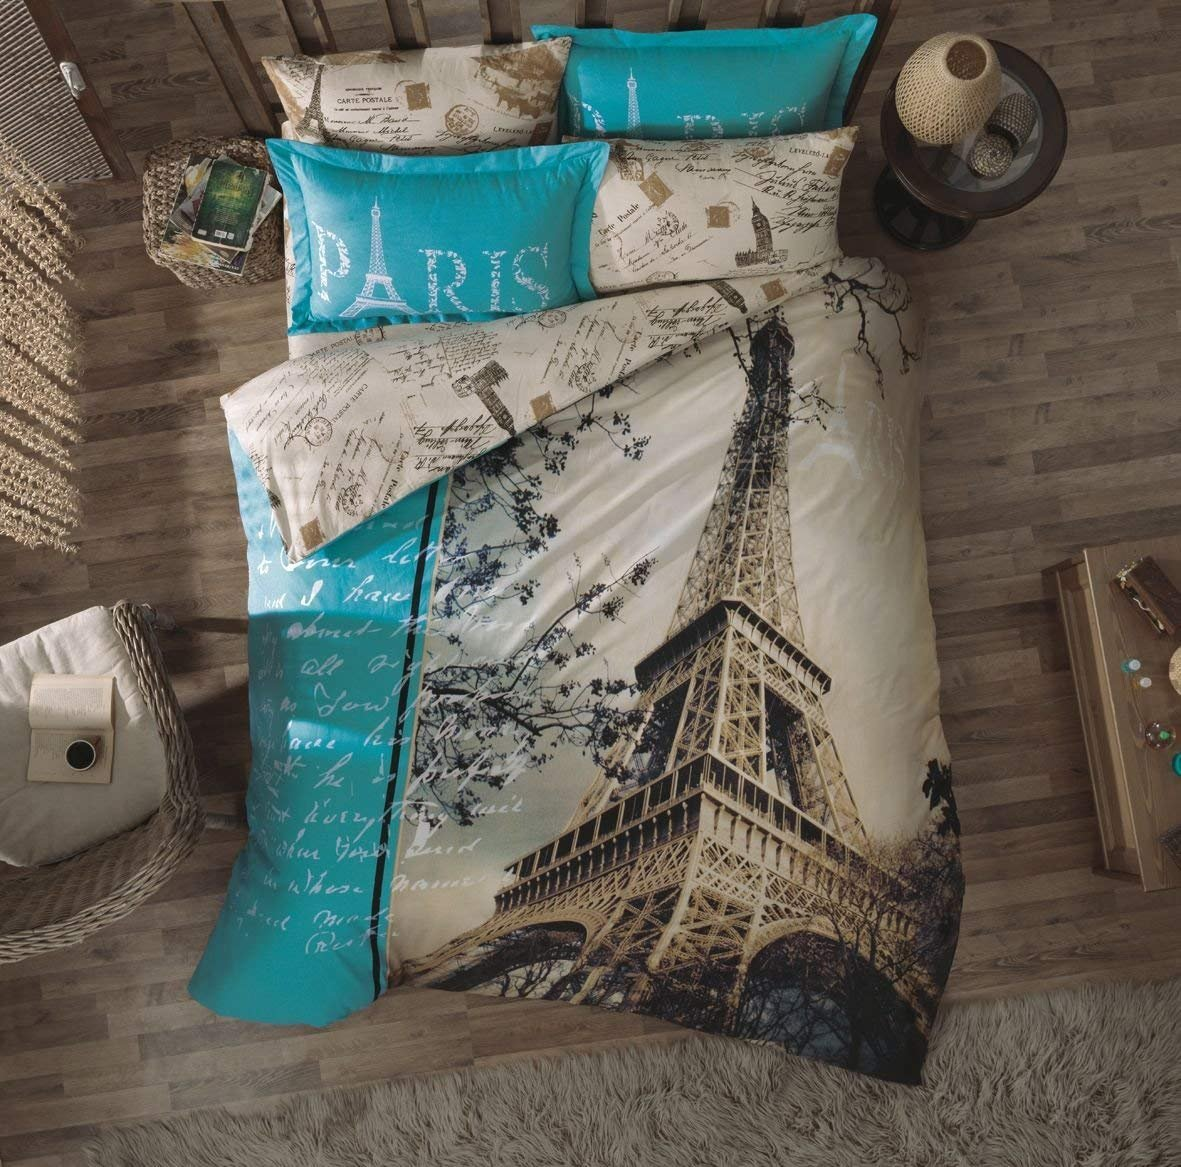 4 Pieces - Paris Viaje Love Eiffel Tower Print Theme Cotton Bedding Duvet Cover Sets Bed, Blue, White, Brown (Twin)